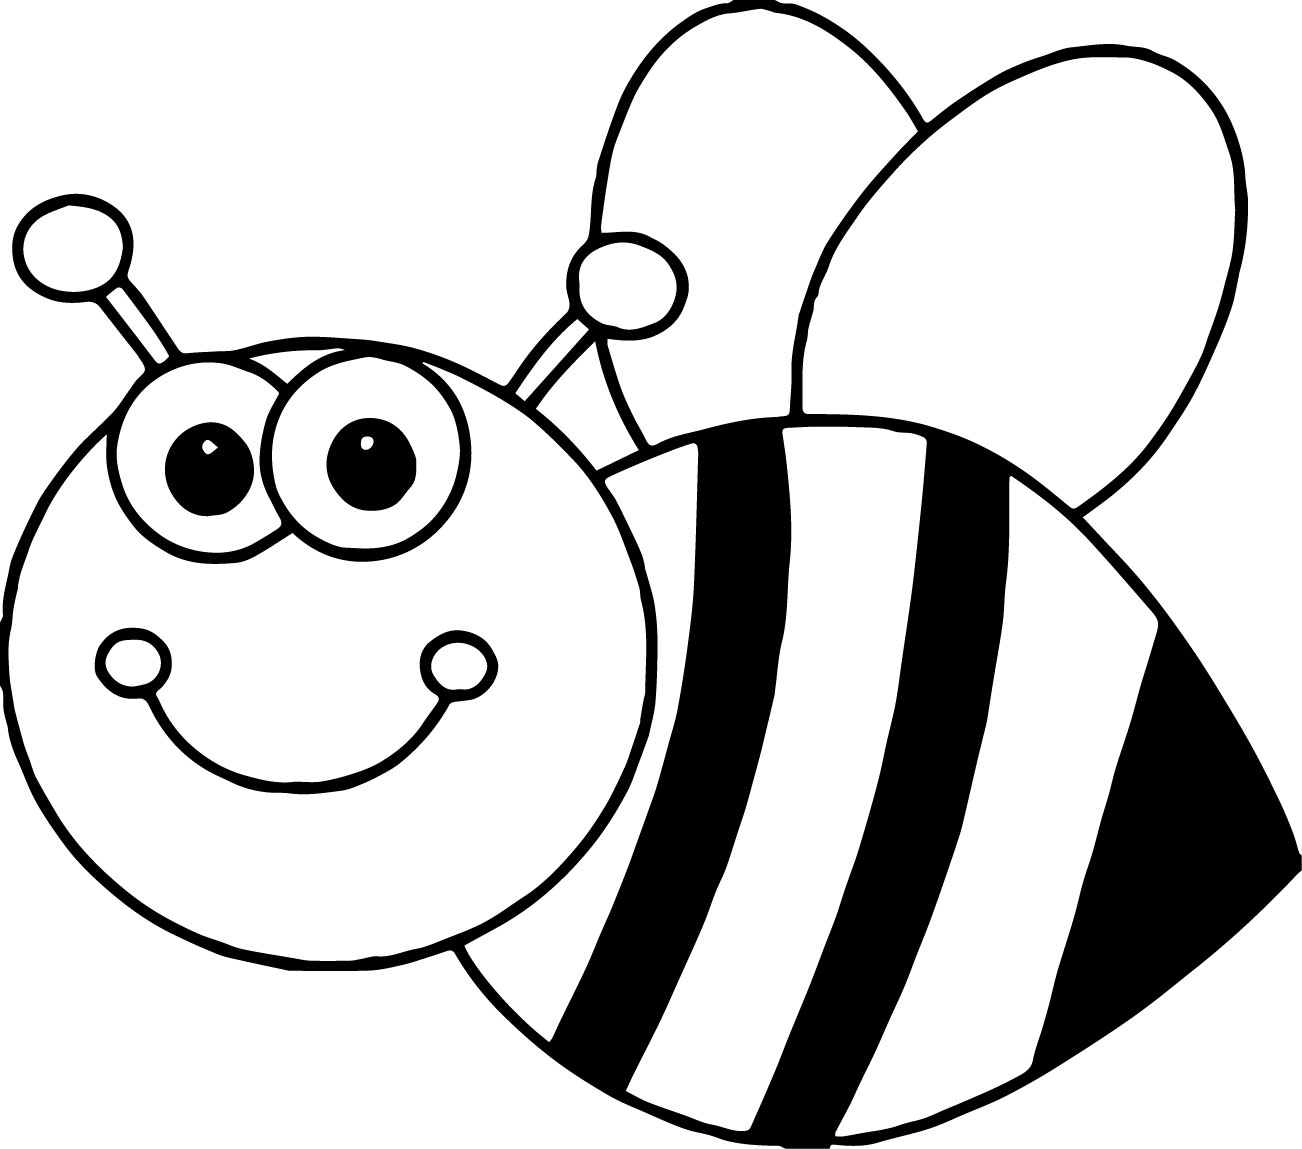 Printable Bee Coloring Pages